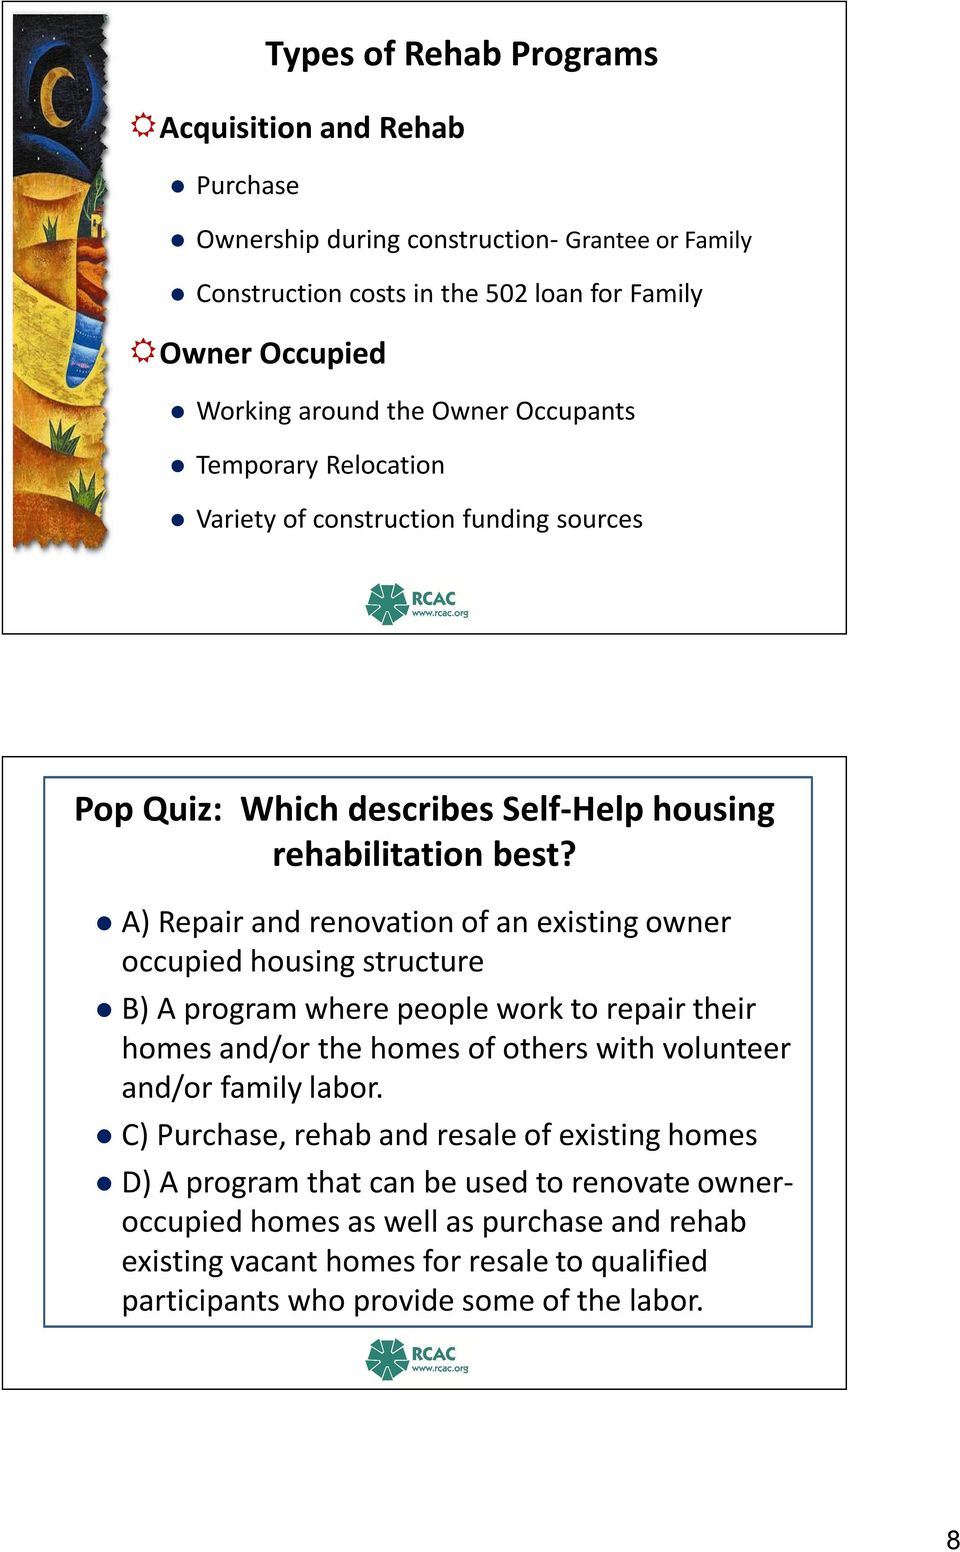 A) Repair and renovation of an existing owner occupied housing structure B) A program where people work to repair their homes and/or the homes of others with volunteer and/or family